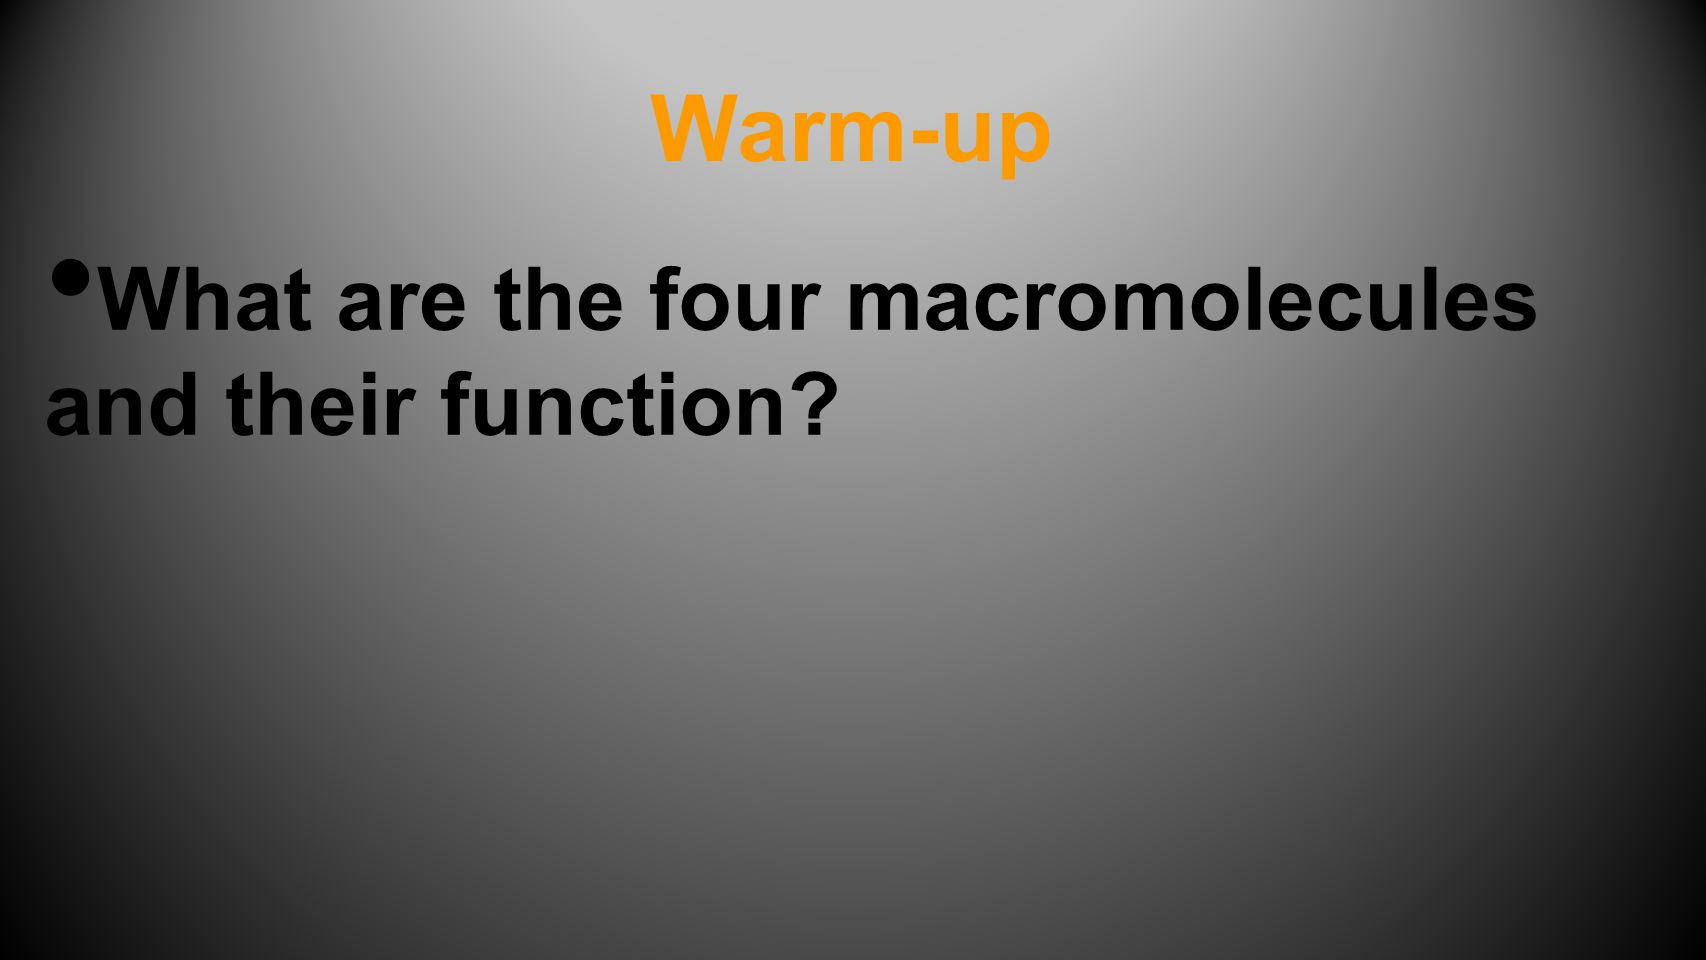 Warm-up What are the four macromolecules and their function